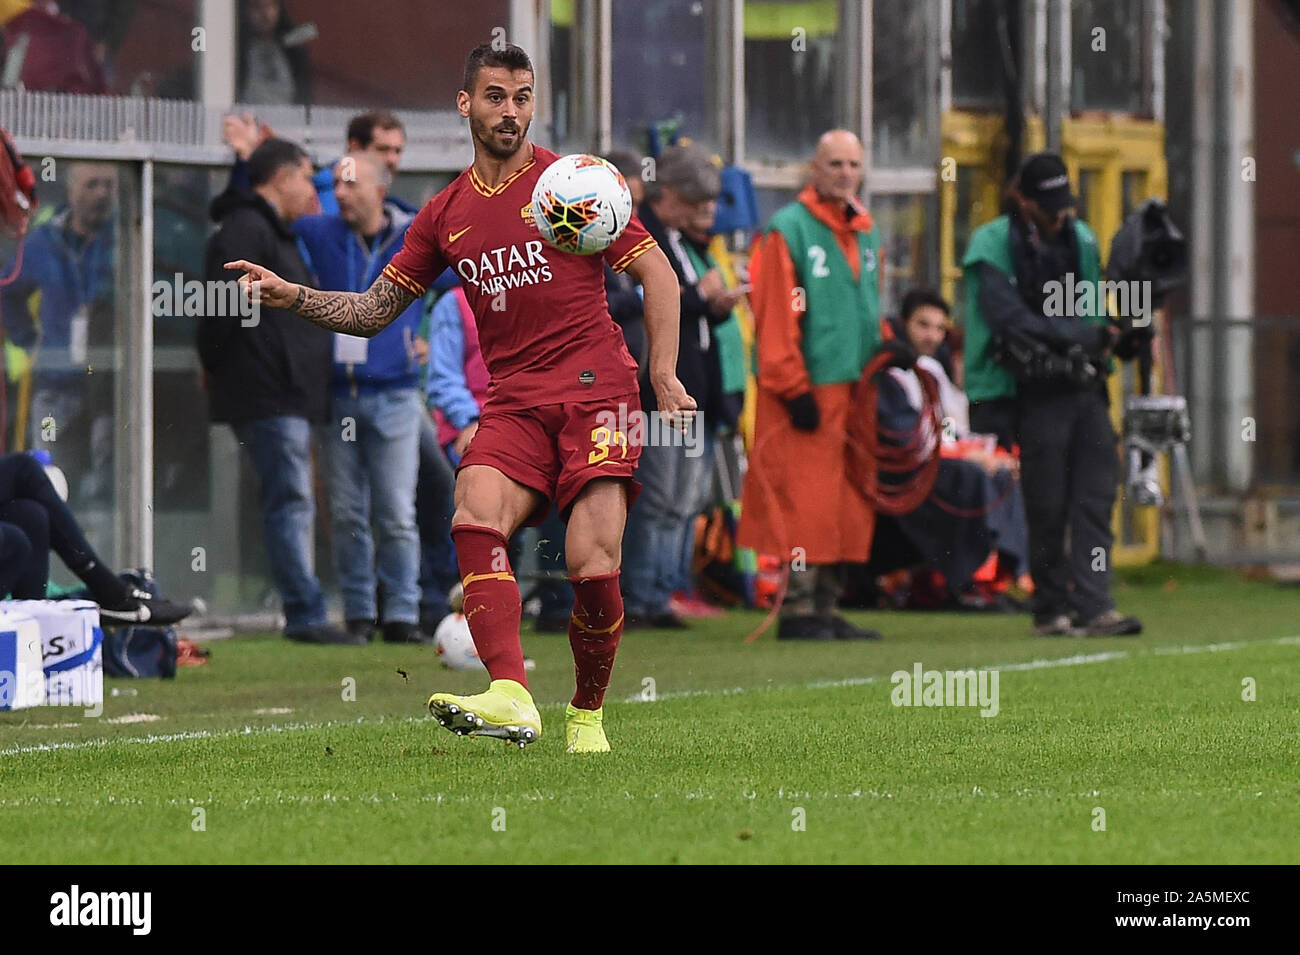 Leonardo Spinazzola Roma During Sampdoria Vs As Roma Genova Italy 20 Oct 2019 Soccer Italian Soccer Serie A Men Championship Stock Photo Alamy